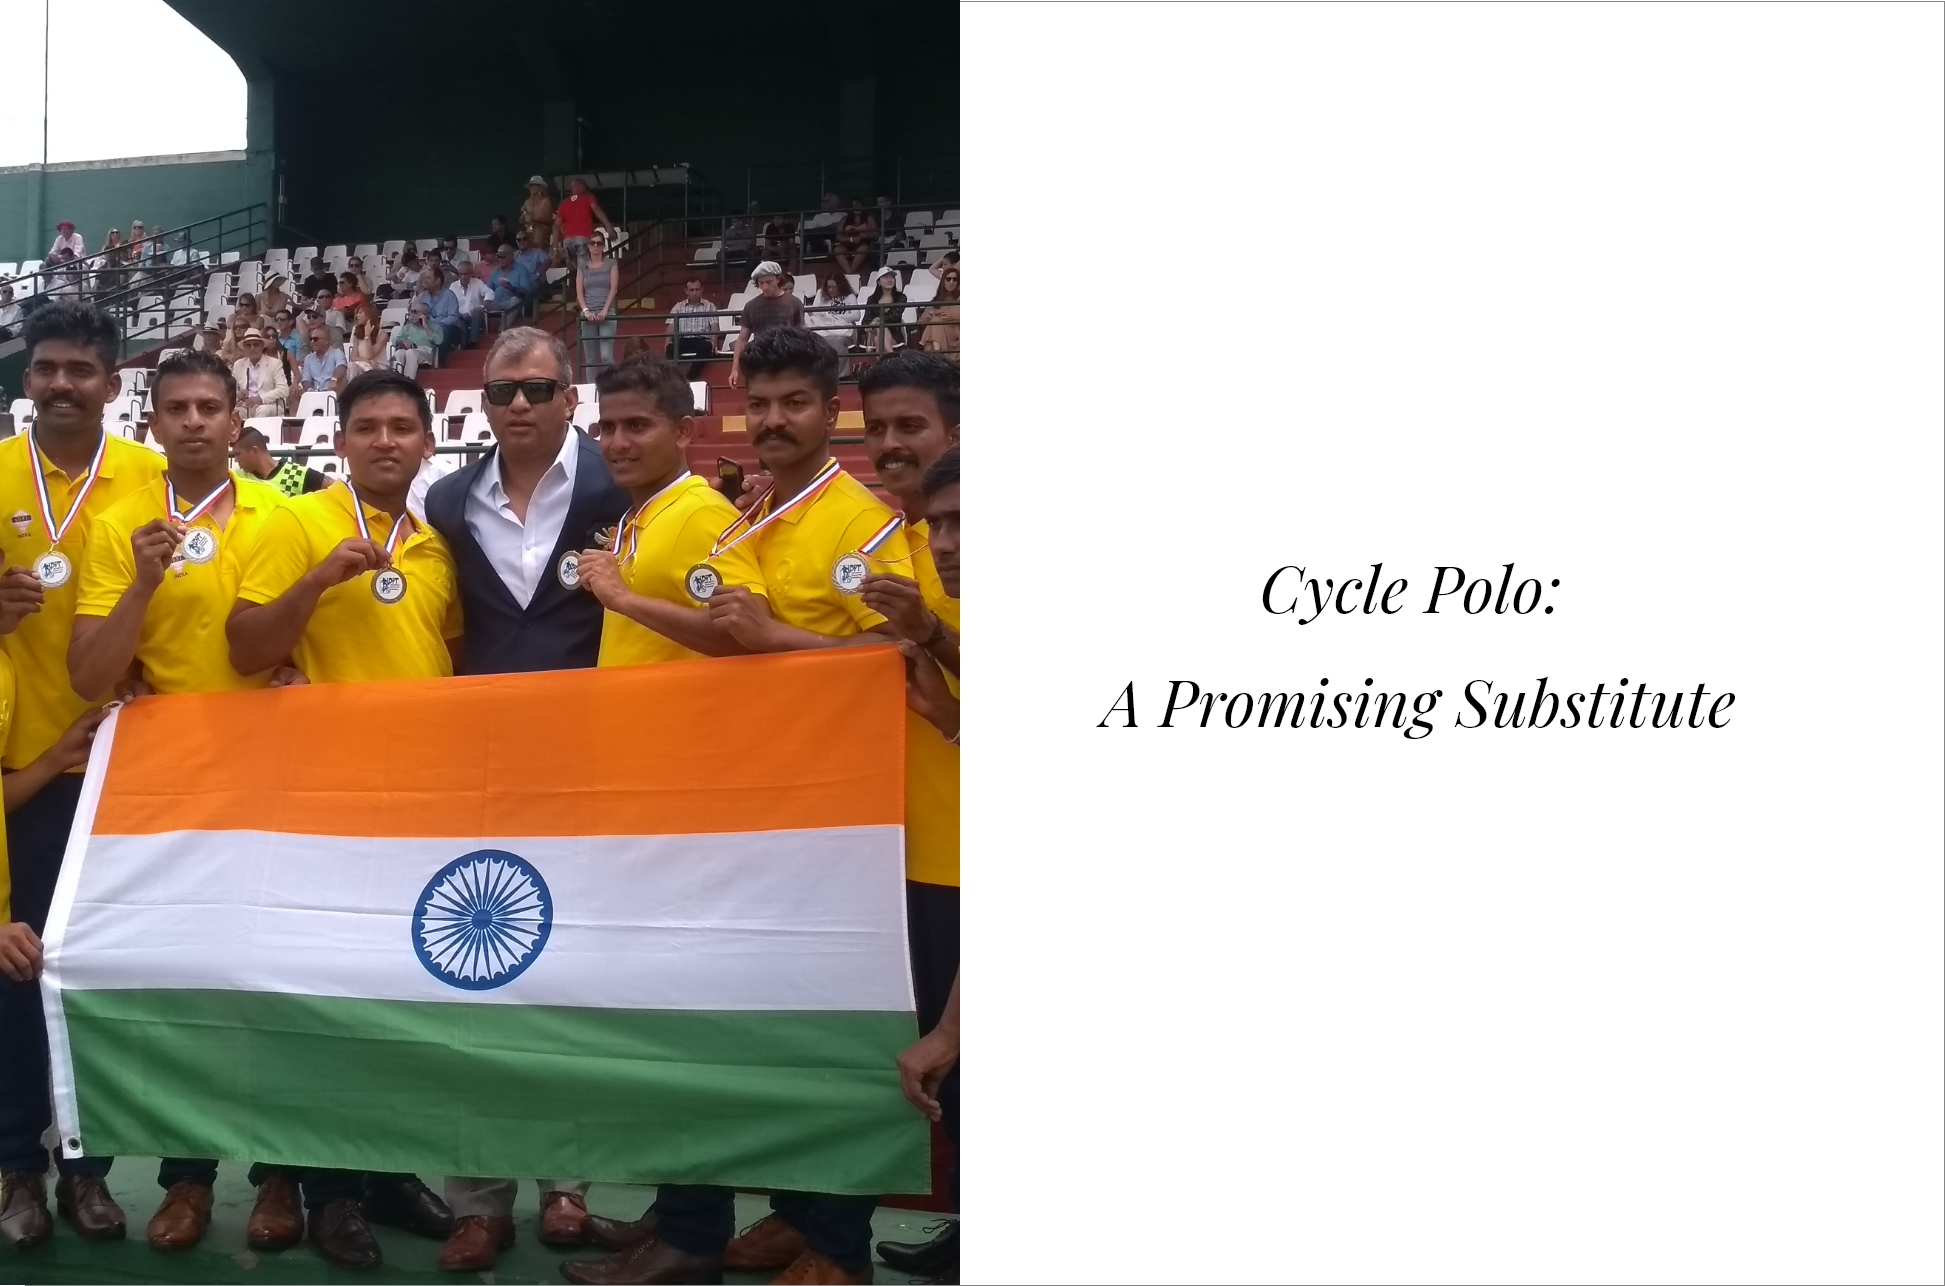 Cycle Polo: A Promising Substitute